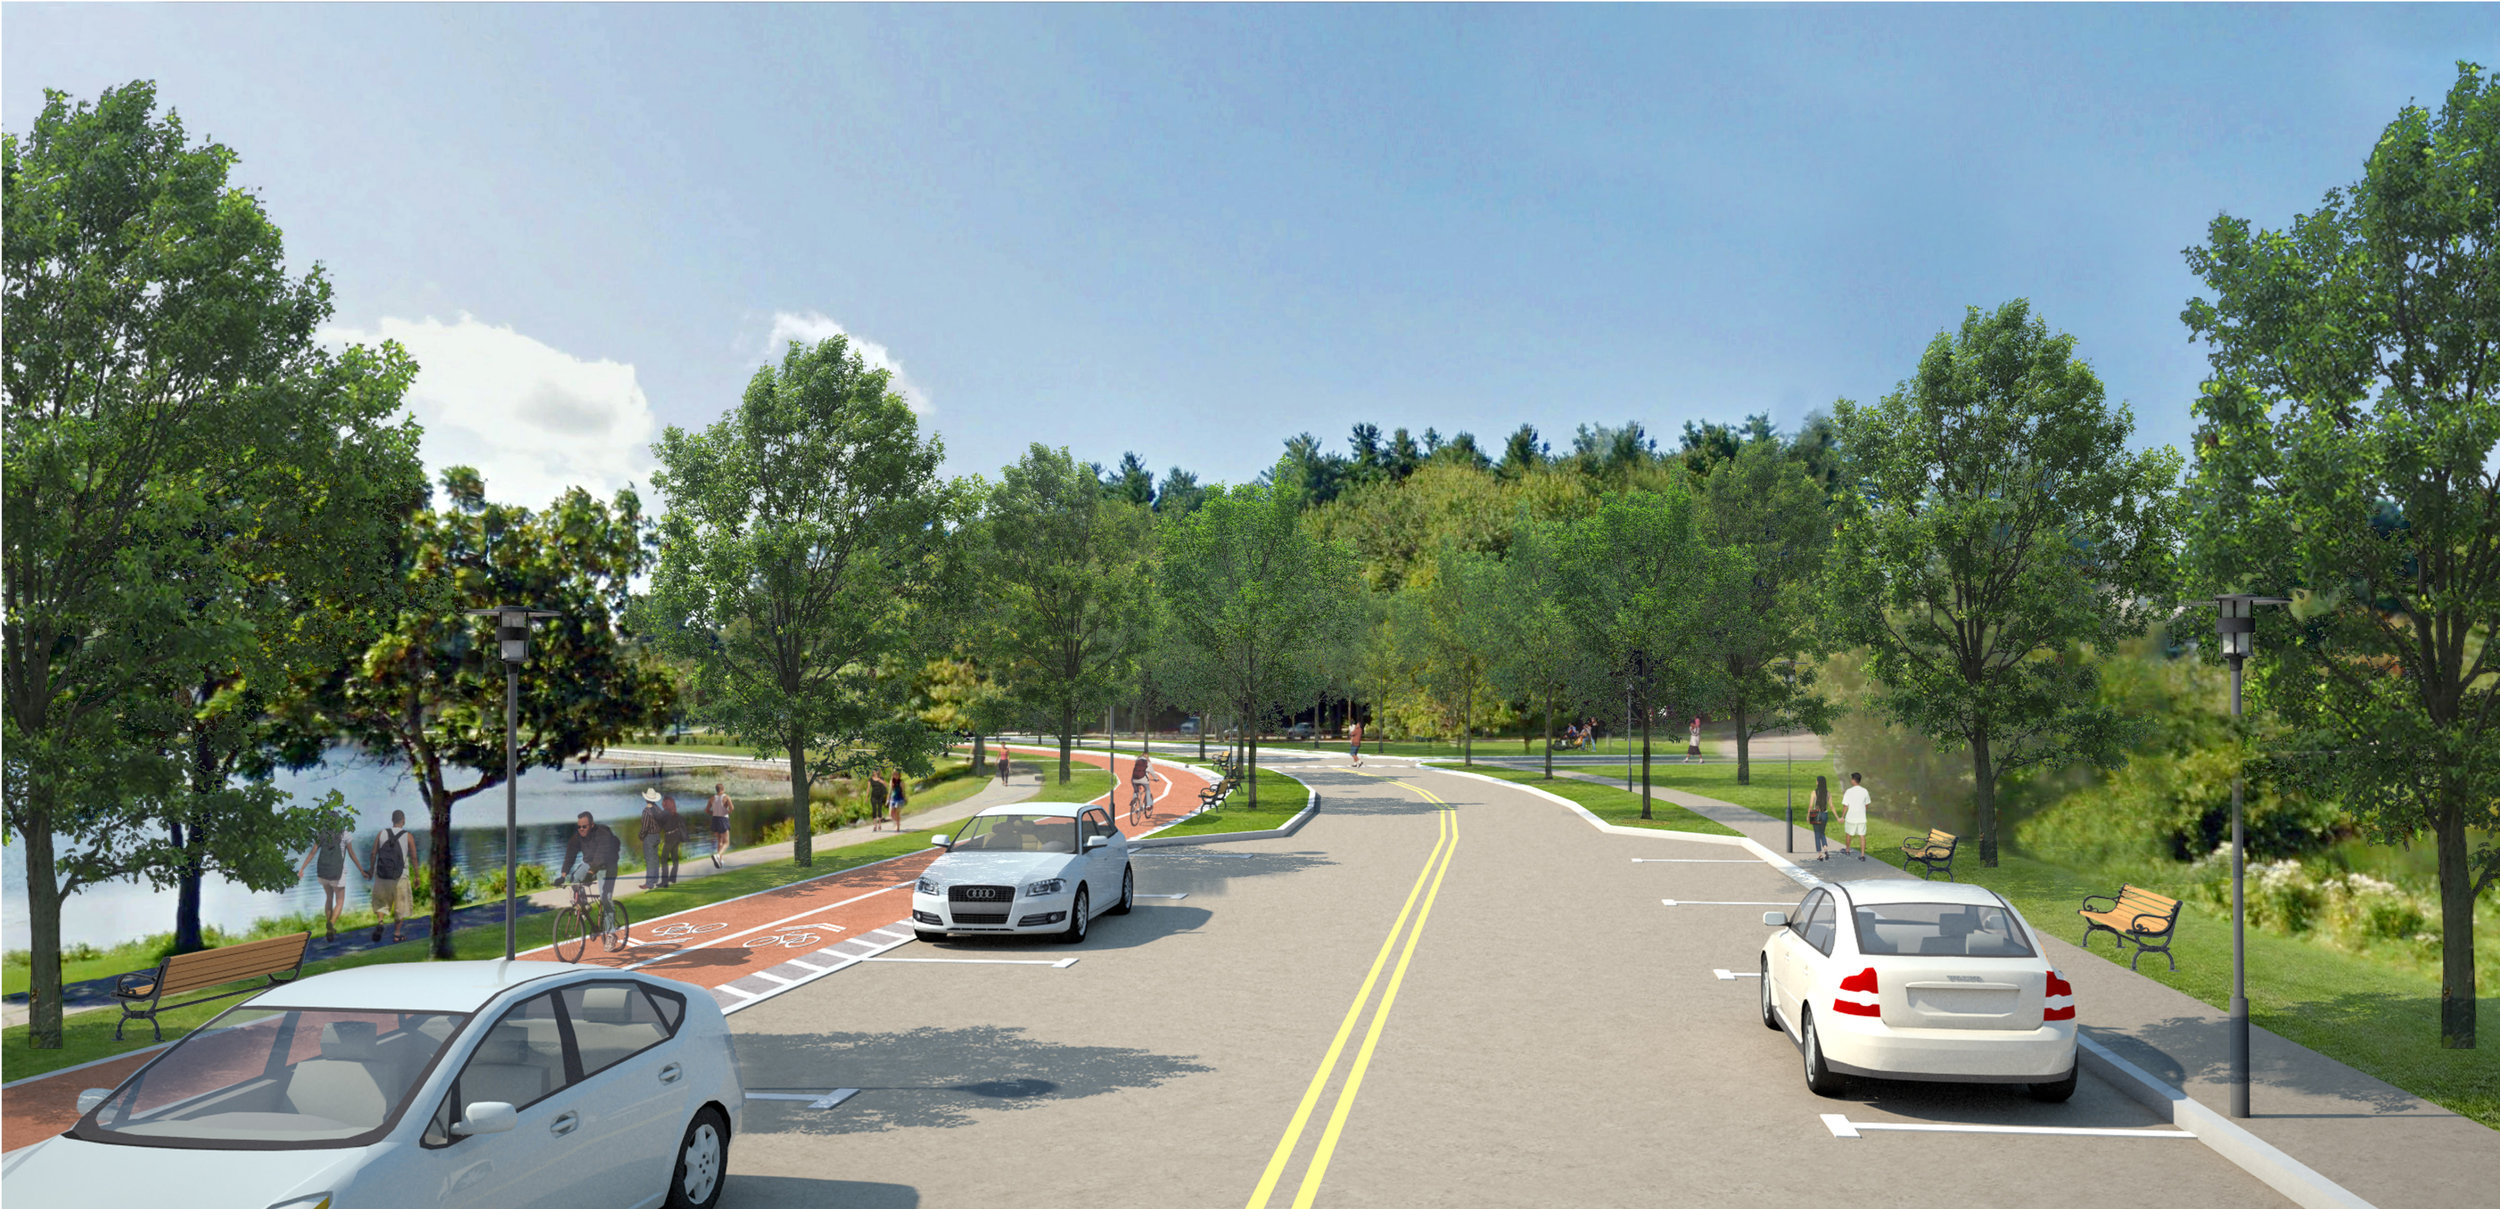 17 ALA - SANFORD Roundabout Proposed Perspective.jpg